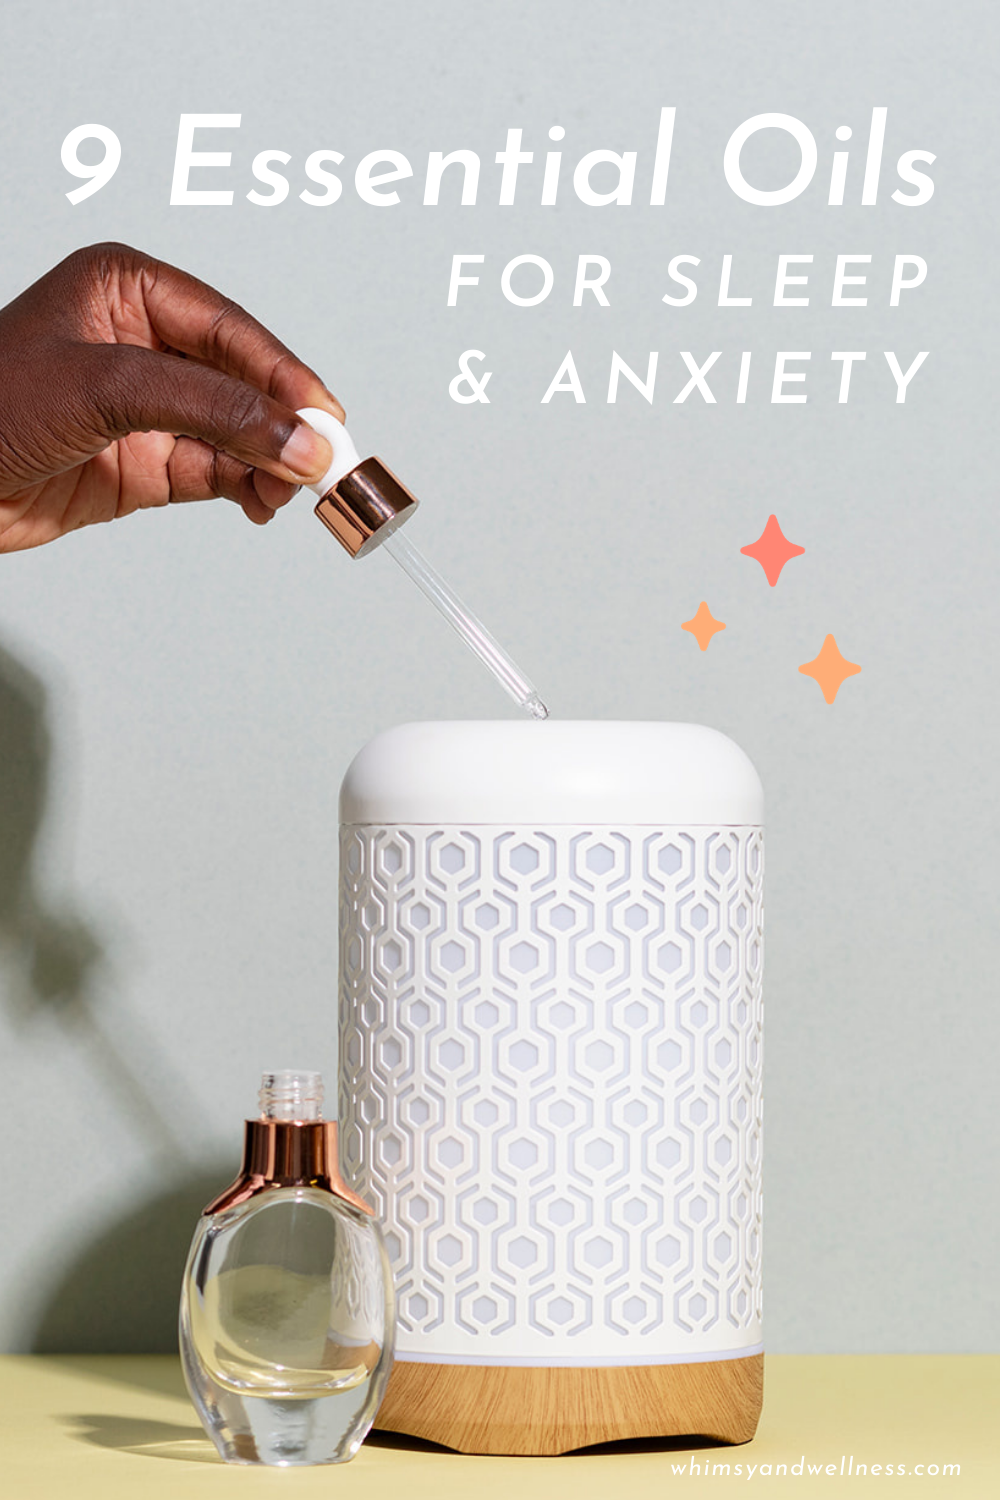 9 essential oils for sleep and anxiety with 6 recipes for roller bottles and diffusers